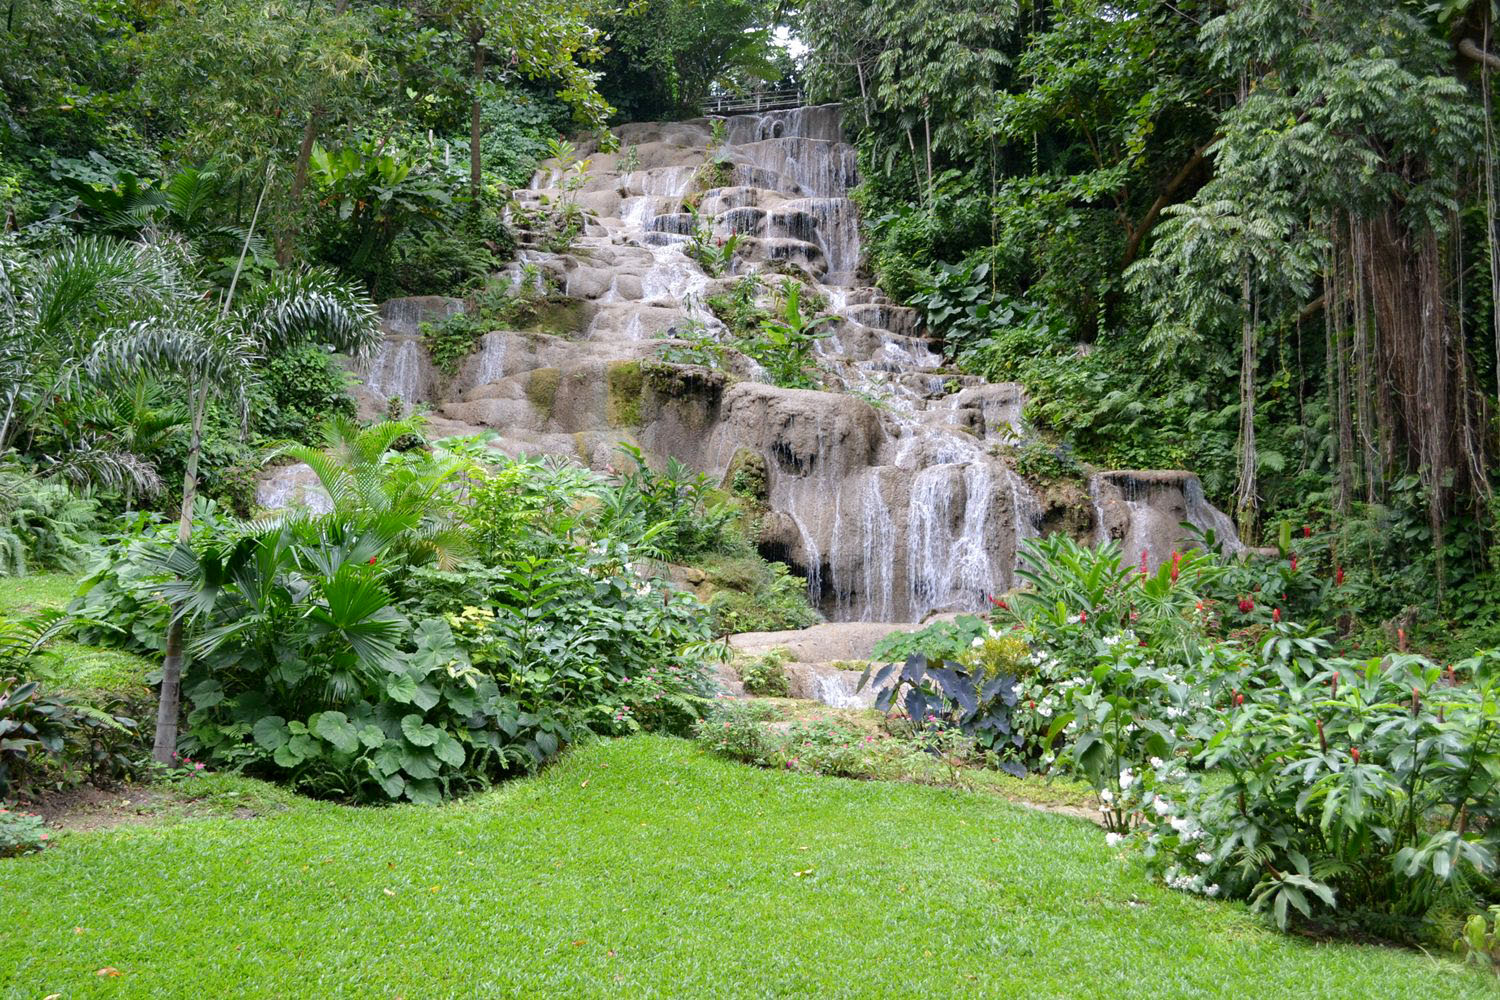 Carl Gilchrist/Photographer   Konoko Falls, Ocho Rios, St Ann                *** Local Caption *** Carl Gilchrist/Photographer   The cascading waterfall greets you as you enter the lower level of the newly refurbished attraction in Ocho Rios, St Ann.